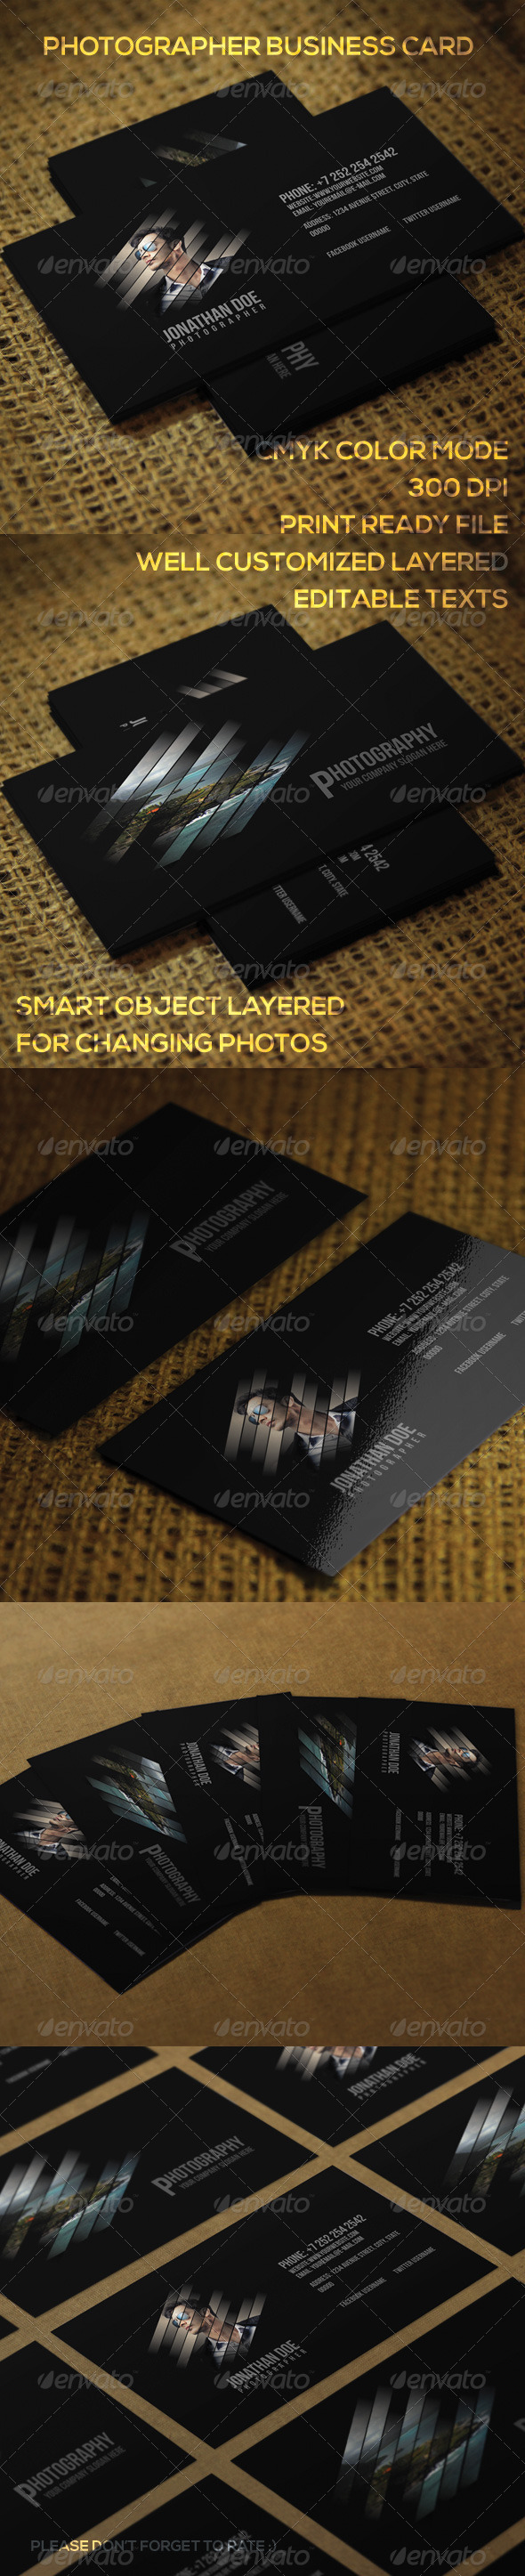 GraphicRiver Photographer Business Card 7536688